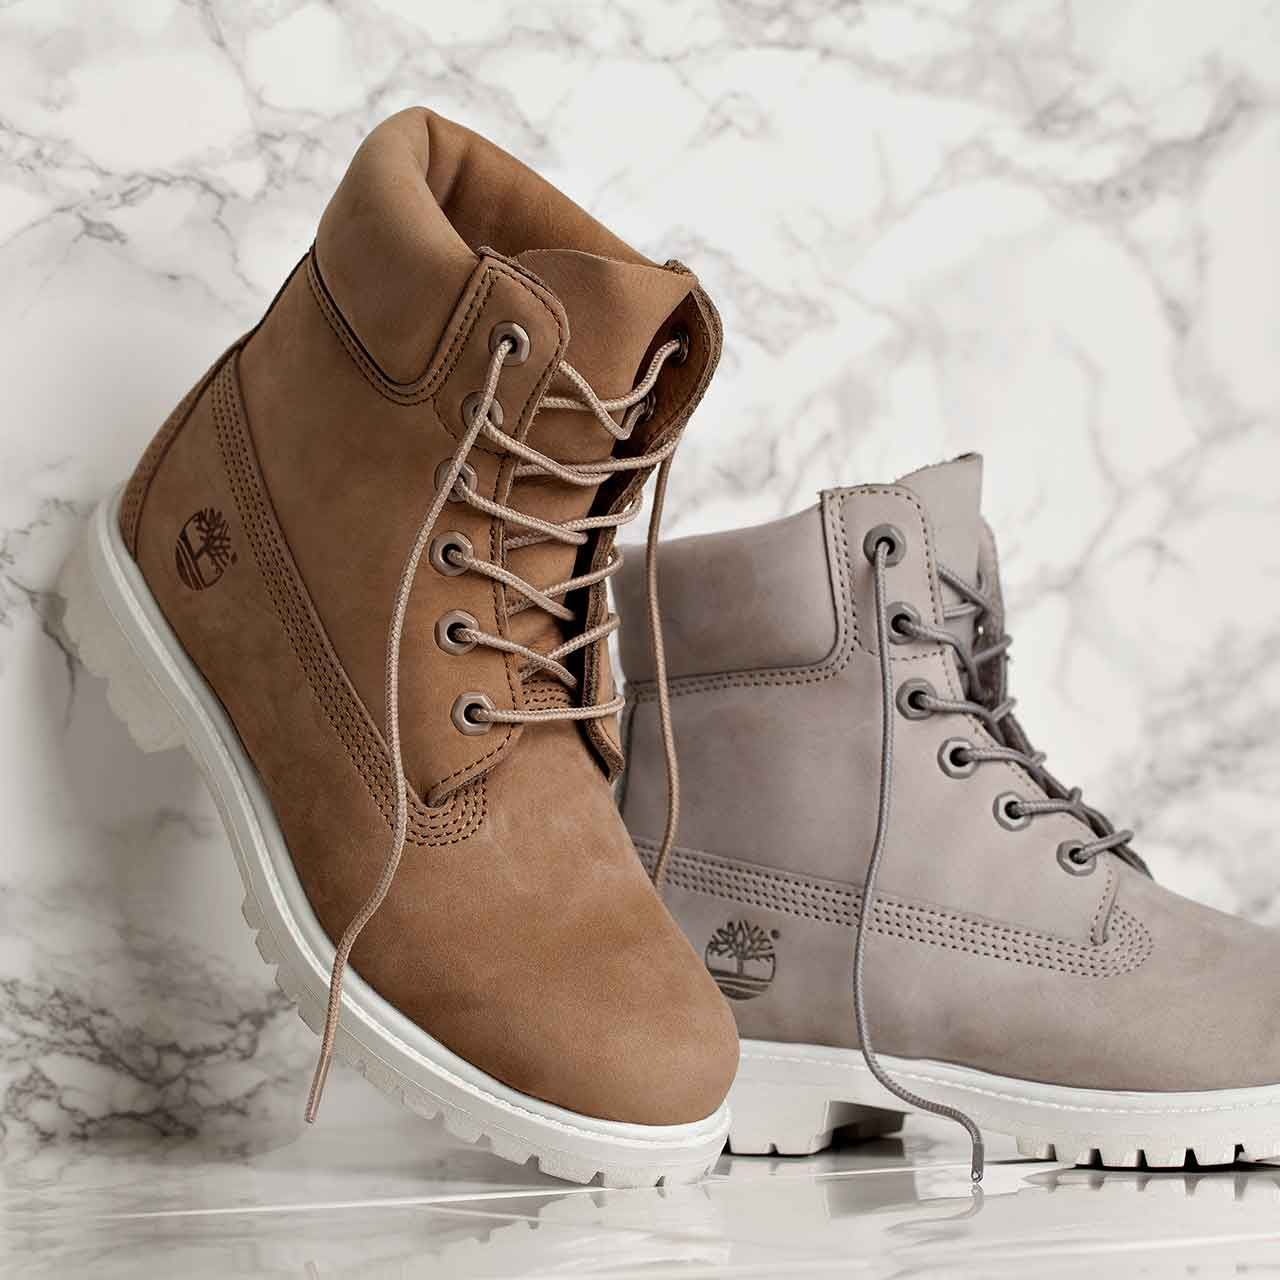 ffecf4d3c47e Meet the Footasylum Exclusive Womens Timberland 6 Inch Premium Boot in Bone    Light Grey! Available now online   in store.